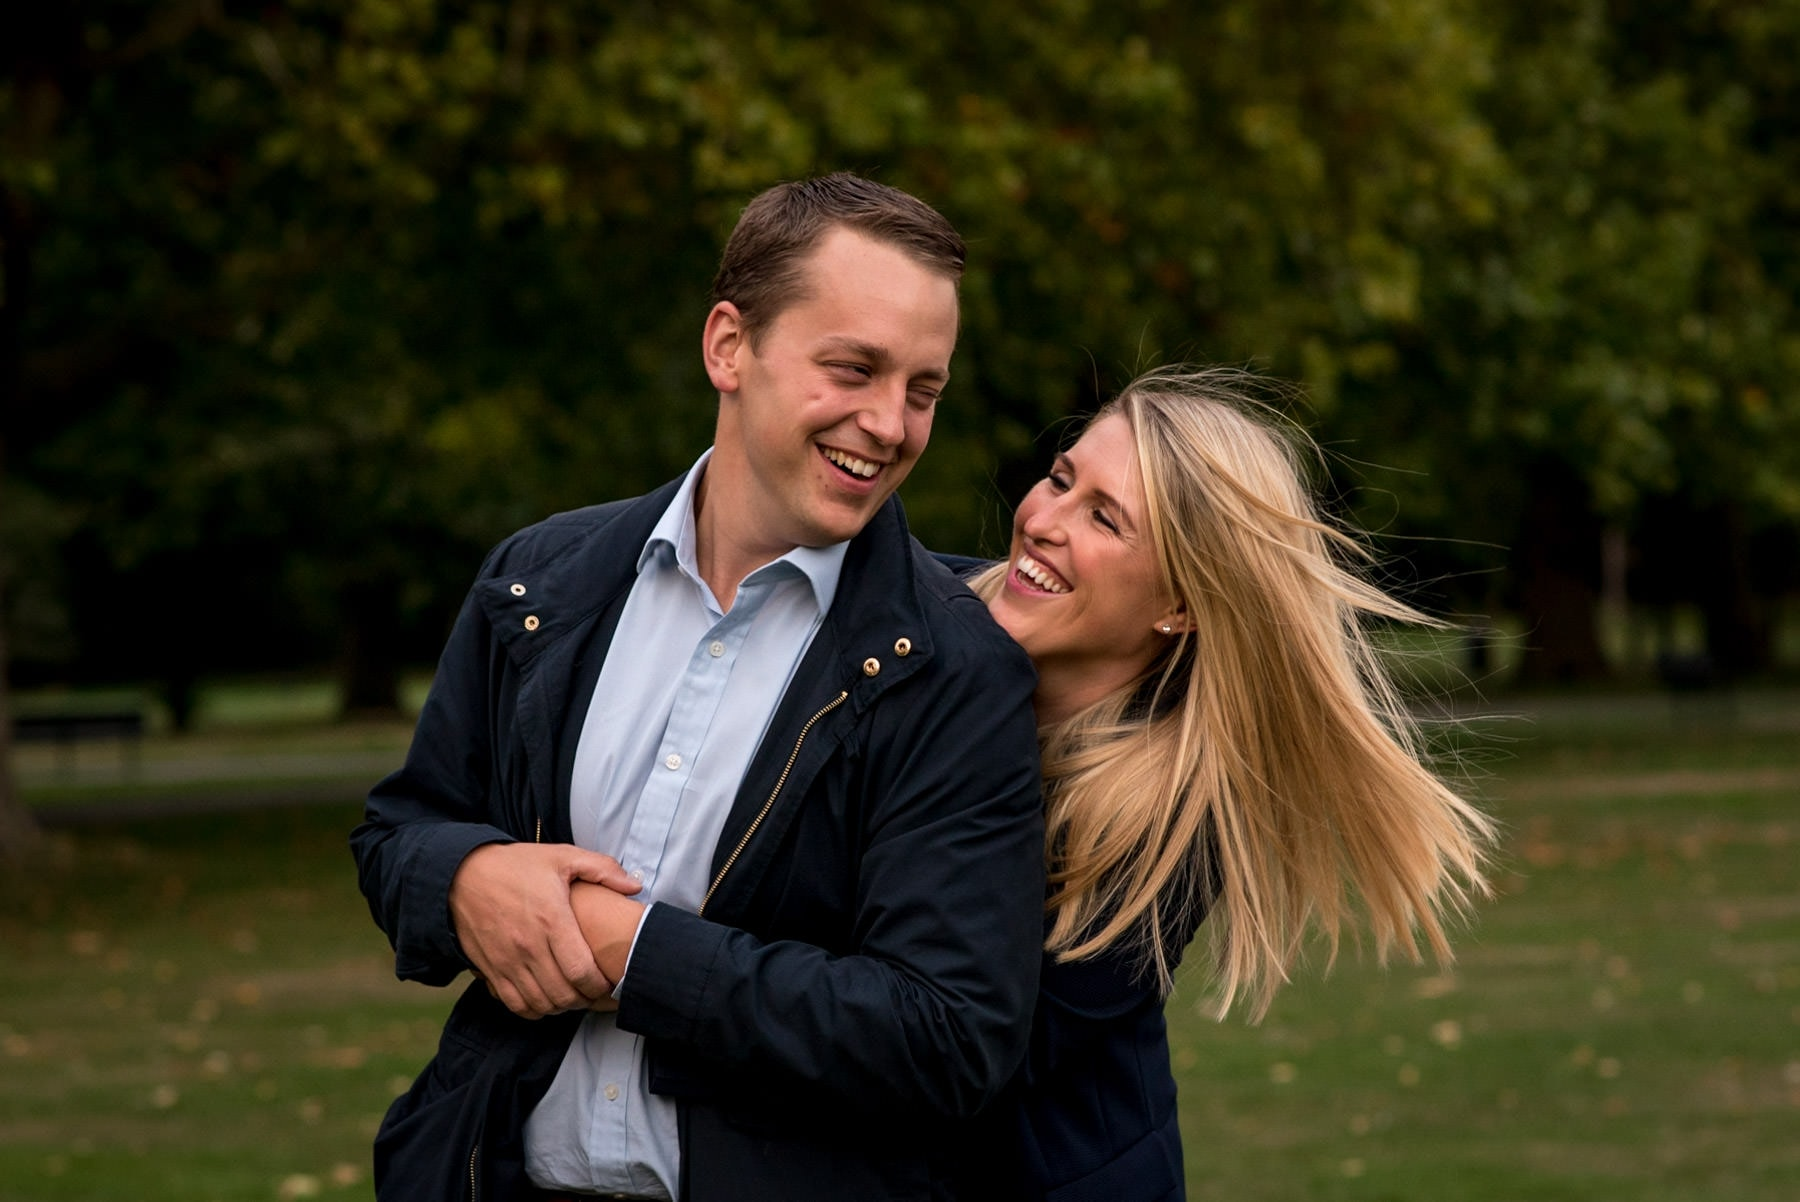 Photo of a women hugging her fiance and laughing in a London park